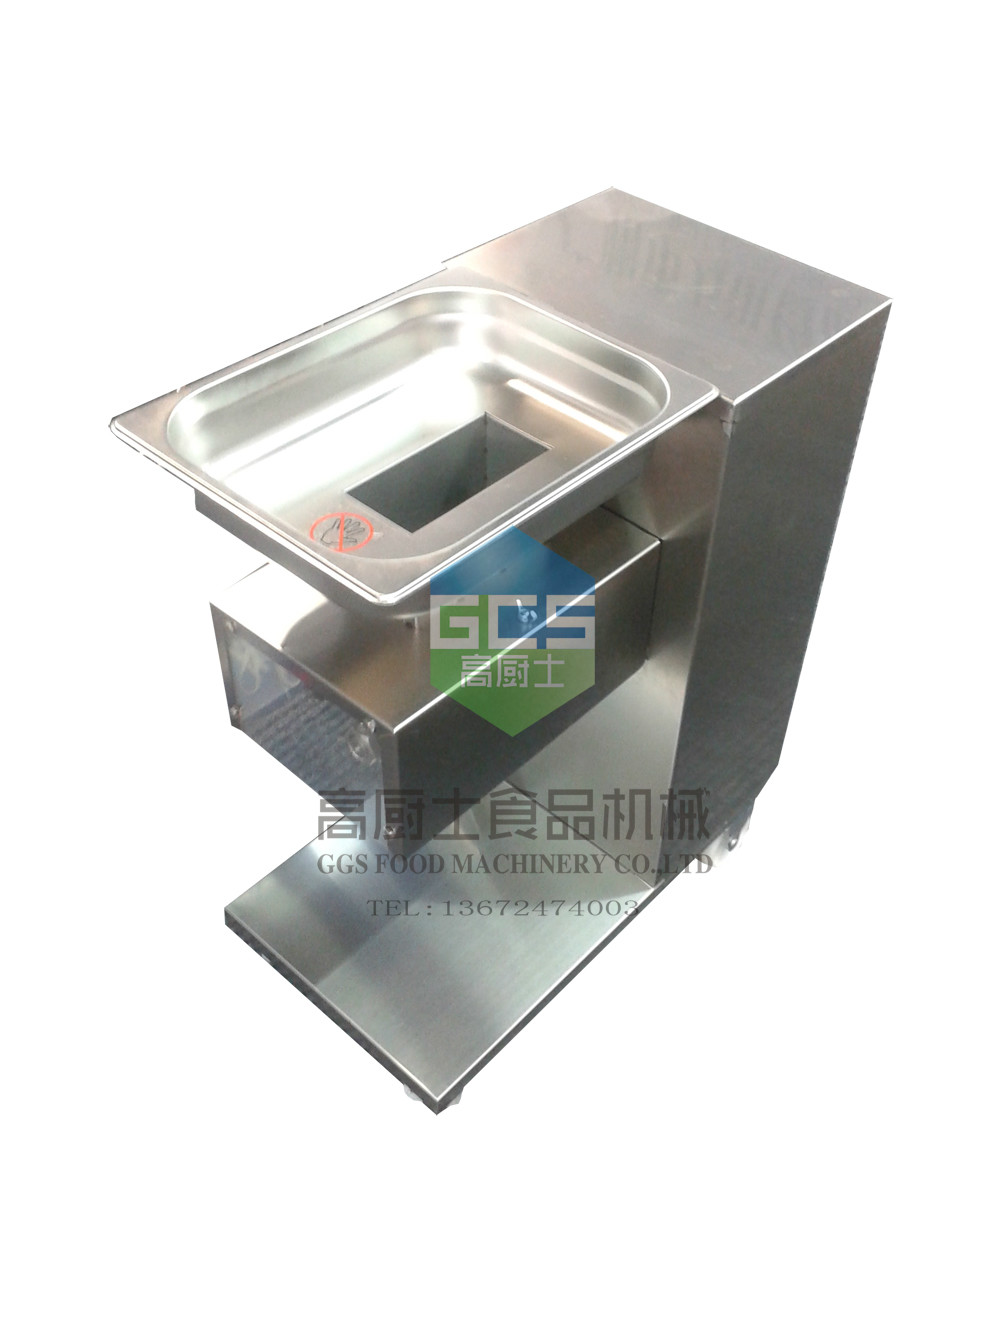 Come with 3 blades QE Meat Slicer Meat cutting macine One Year Warranty fast shipping ...